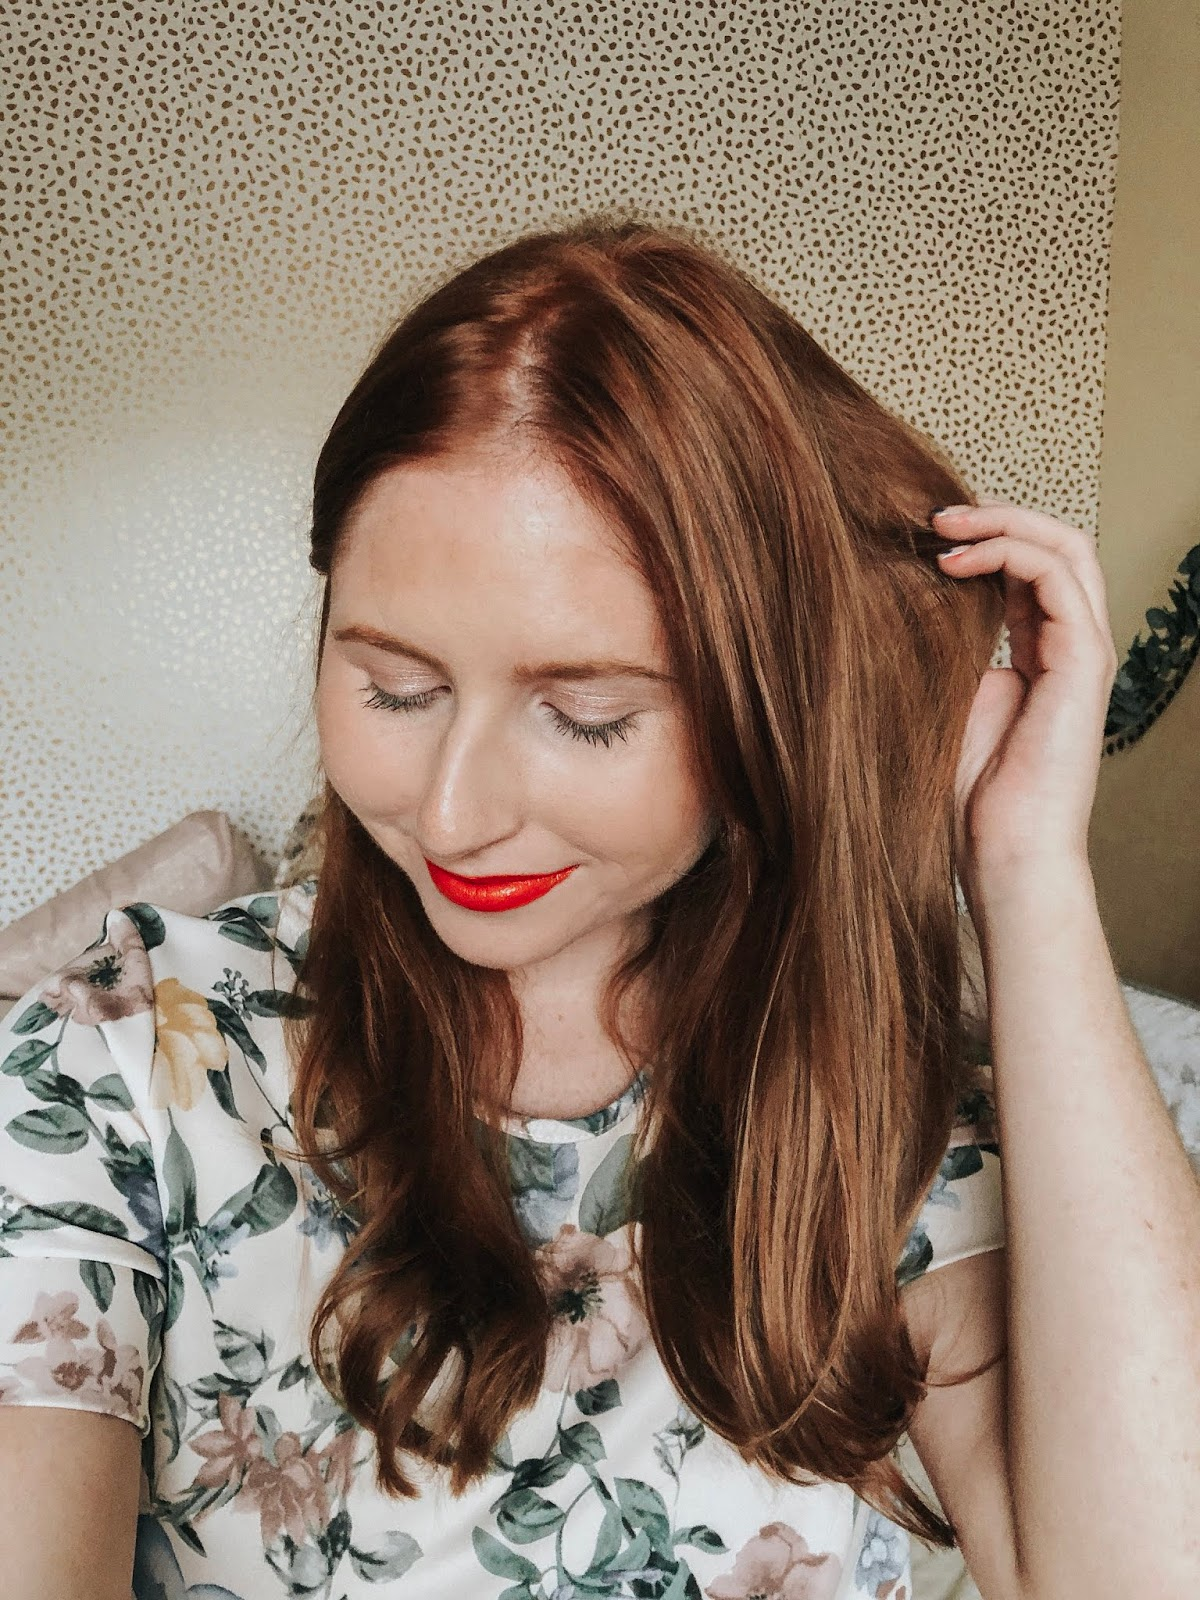 Best Drugstore Lipsticks for Fair Skin: Summer Edition NYX Liquid Suede Cream Matte Lipstick range. Amanda Burrows of Affordable by Amanda shares her beauty post covering drugstore lipsticks from NYX. She is wearing the orange color orange county.